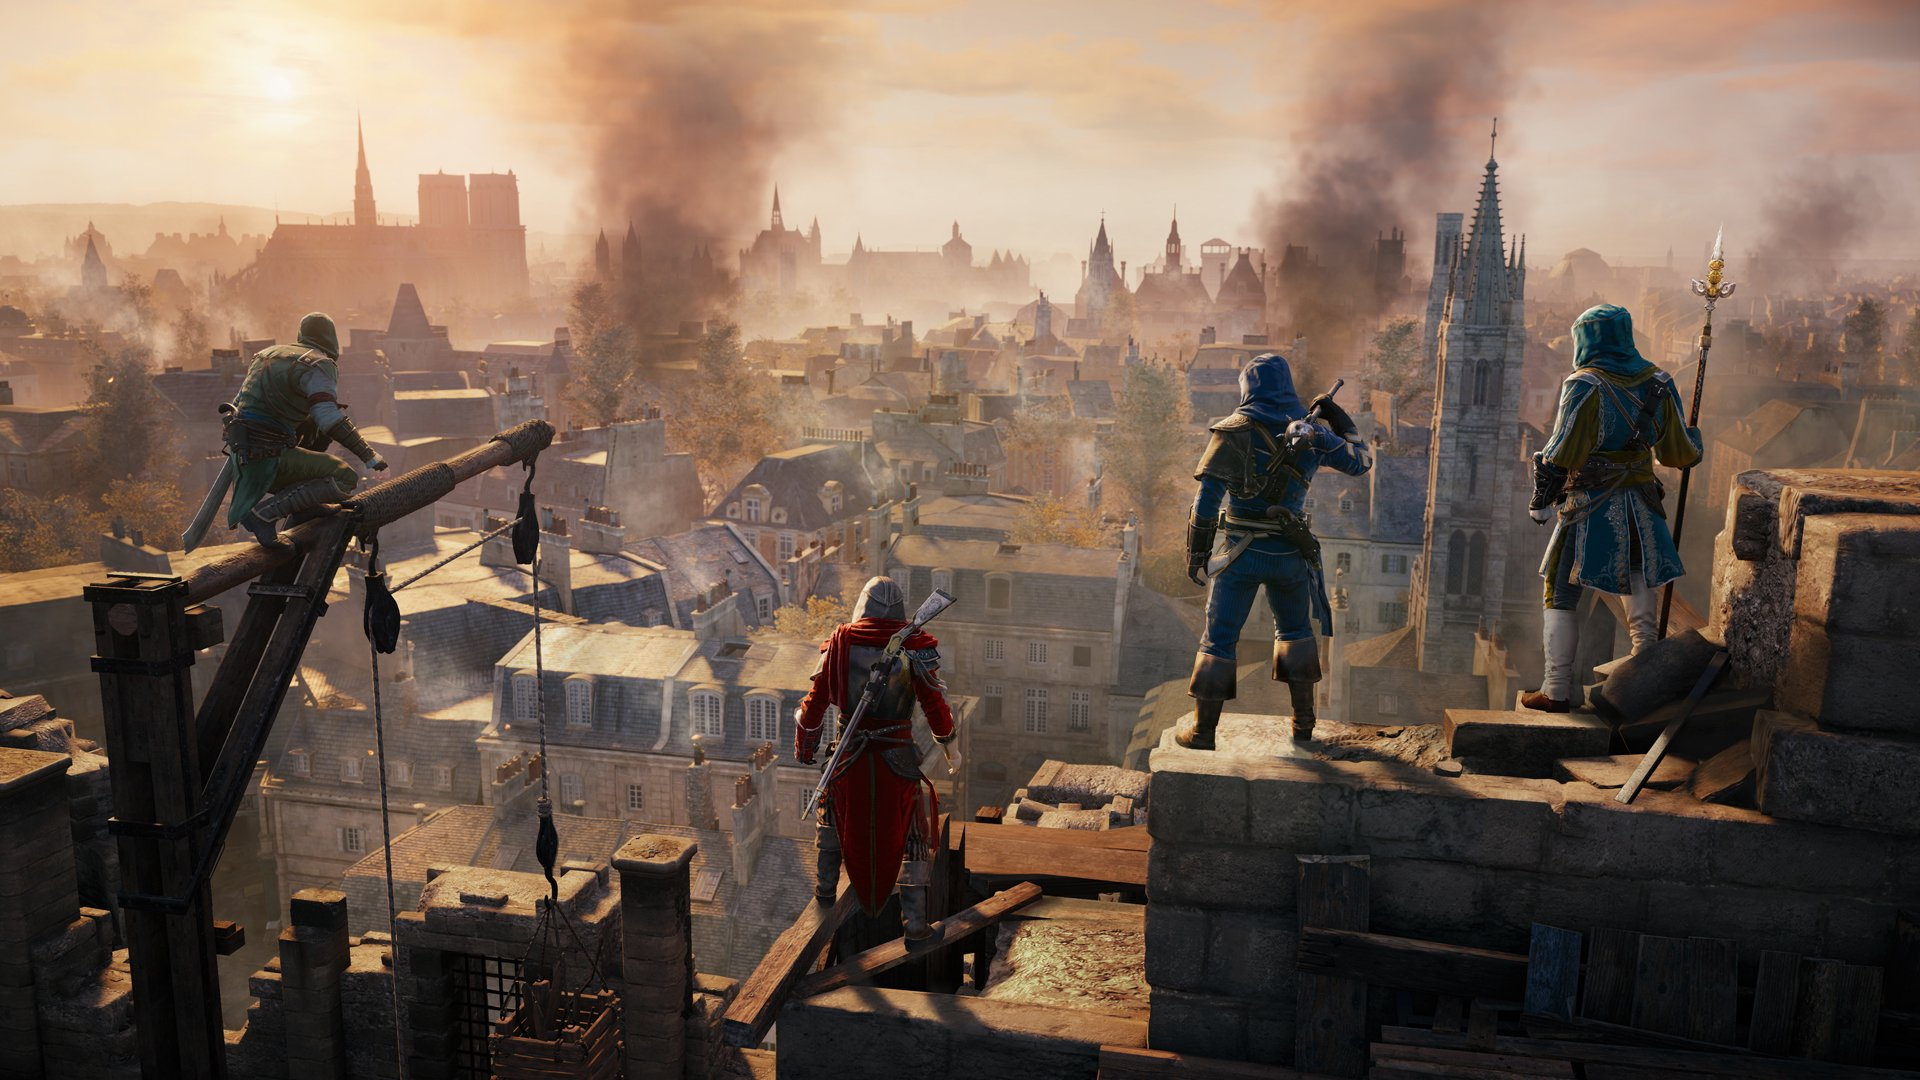 file_65994_Assassins_Creed_Unity_COOP_Iconic_1415412400